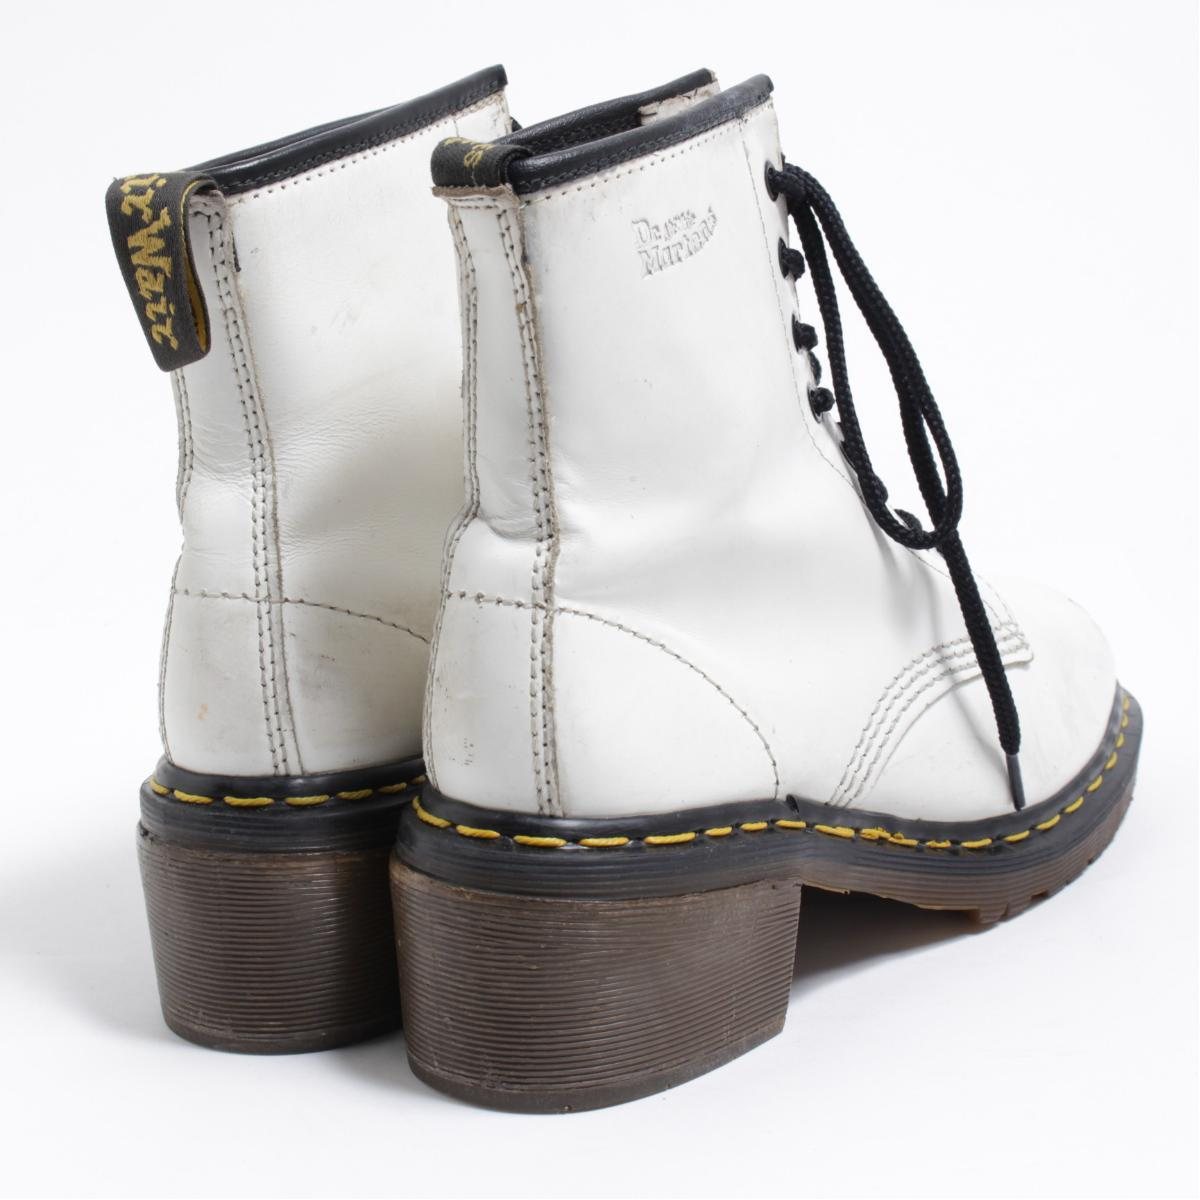 UK6 Lady's 24.5cm /bon0858 made in the doctor Martin Dr.Martens high-heeled shoes 8 hall boots U.K.